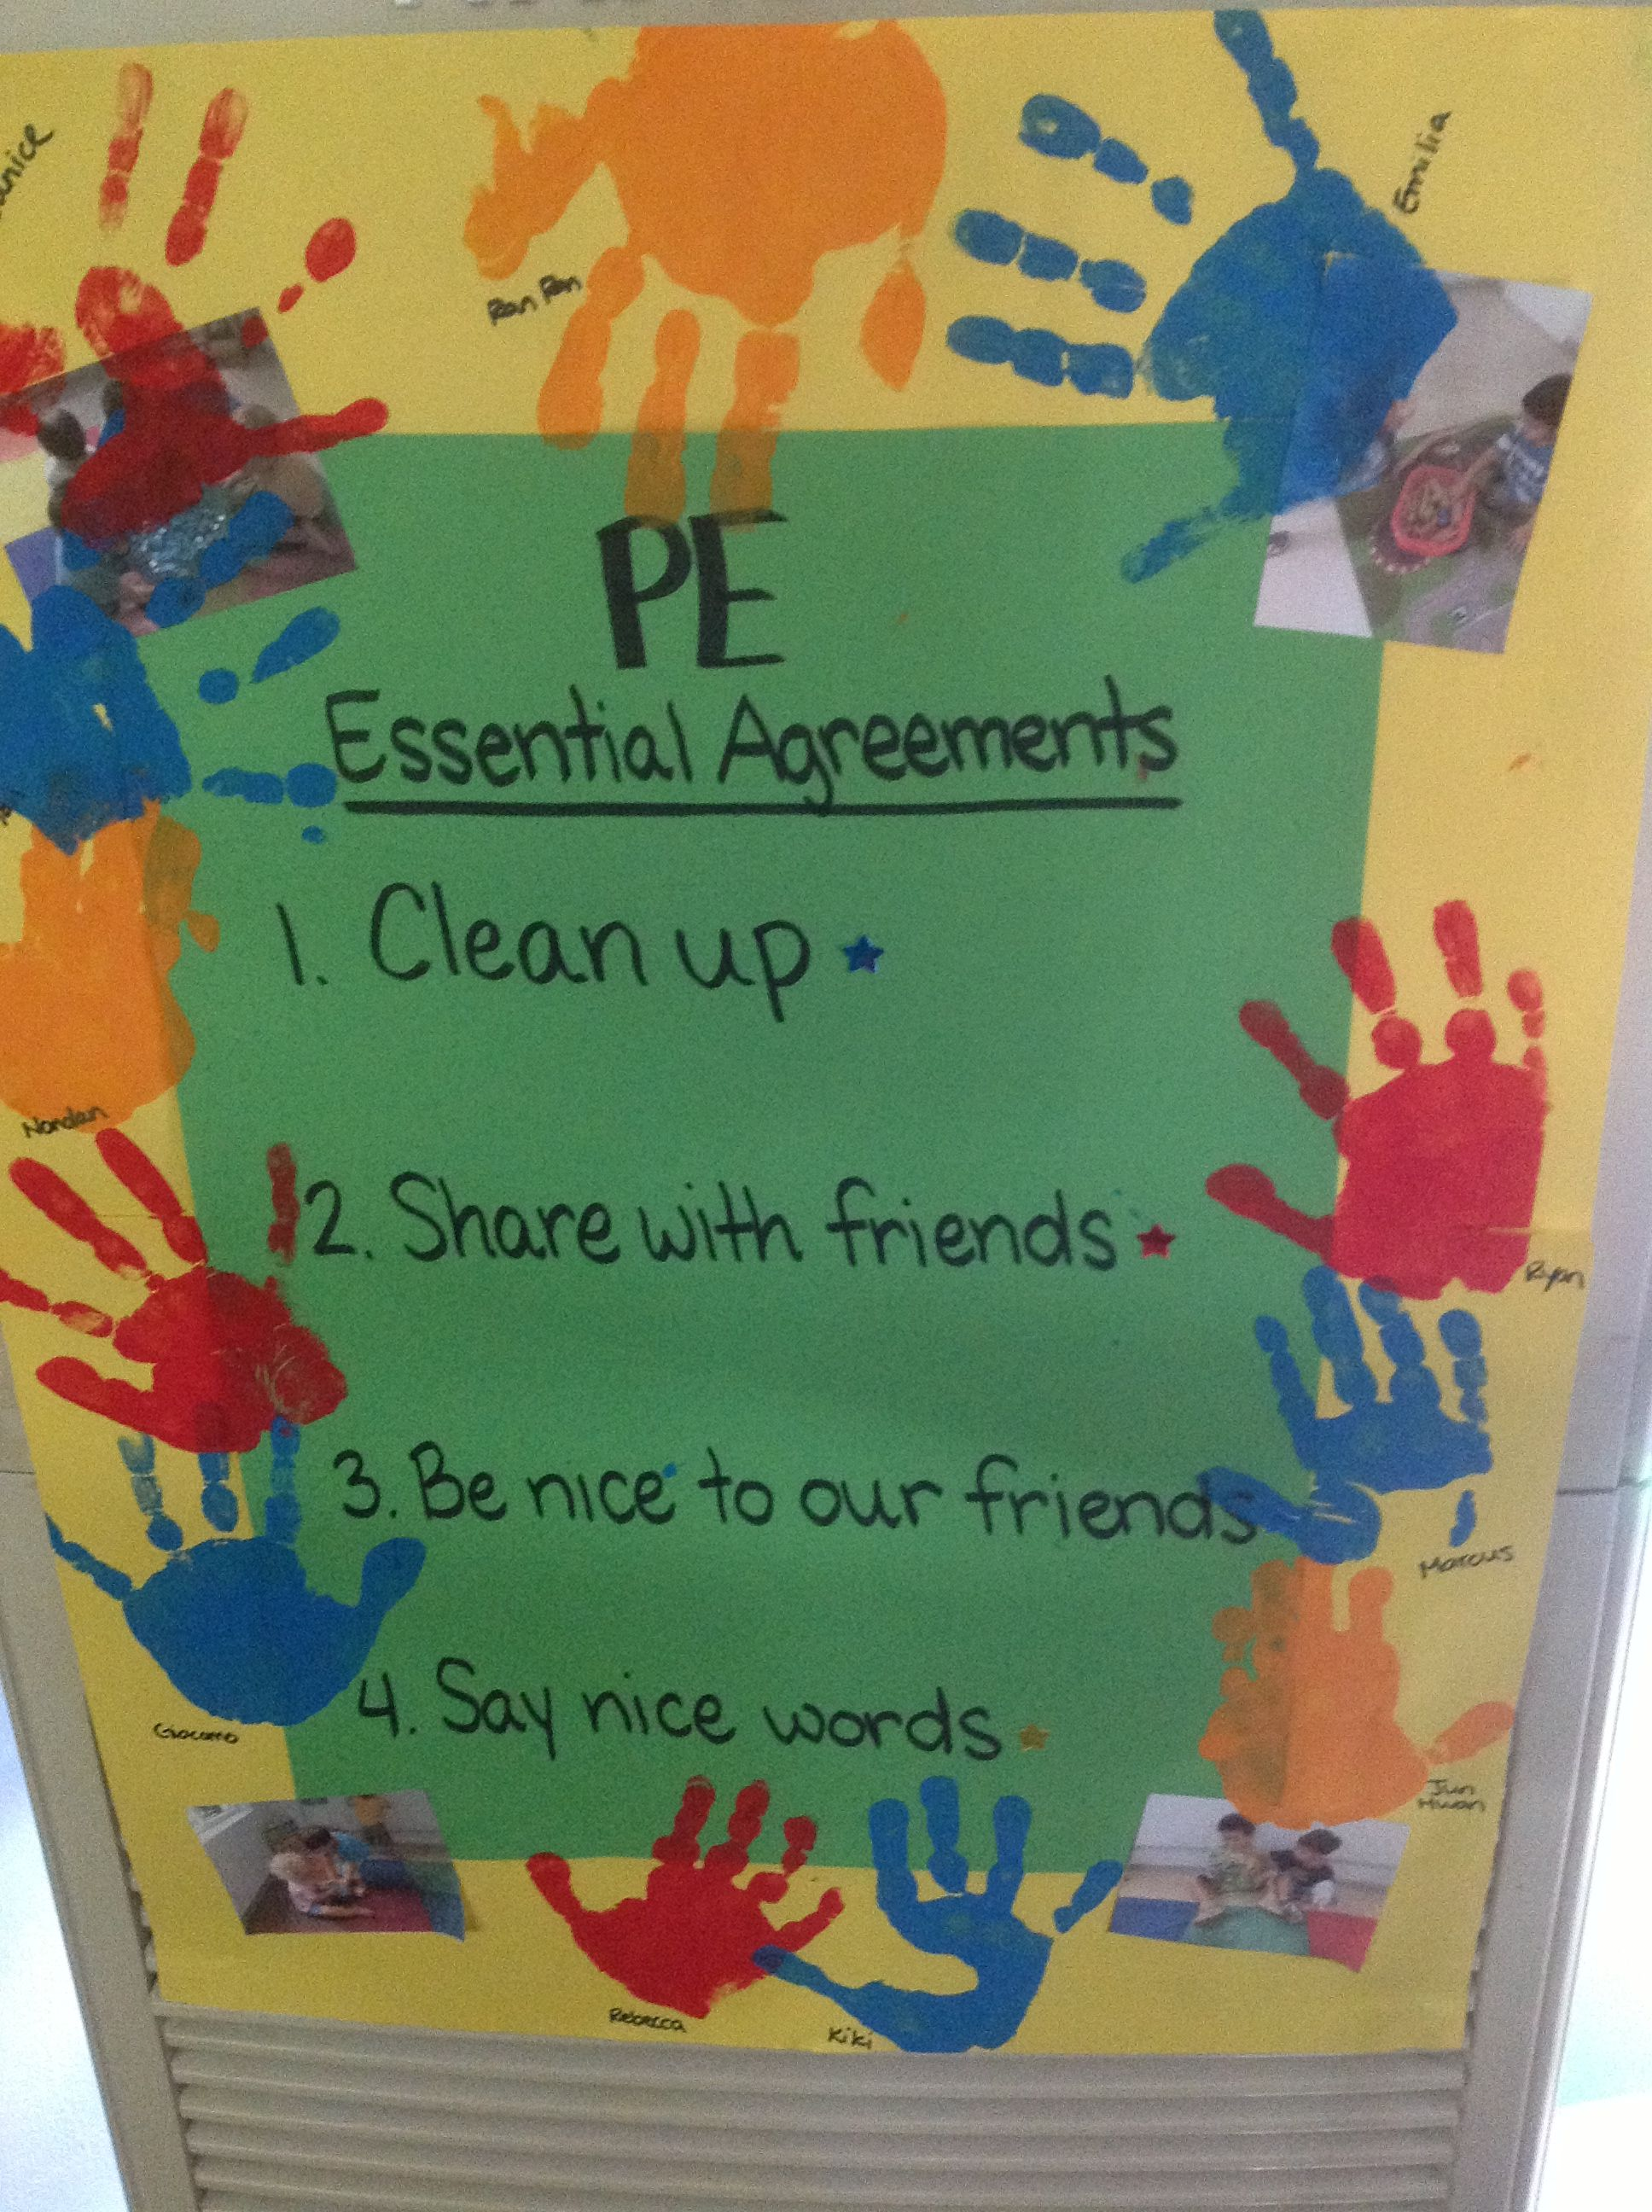 Essential Agreements